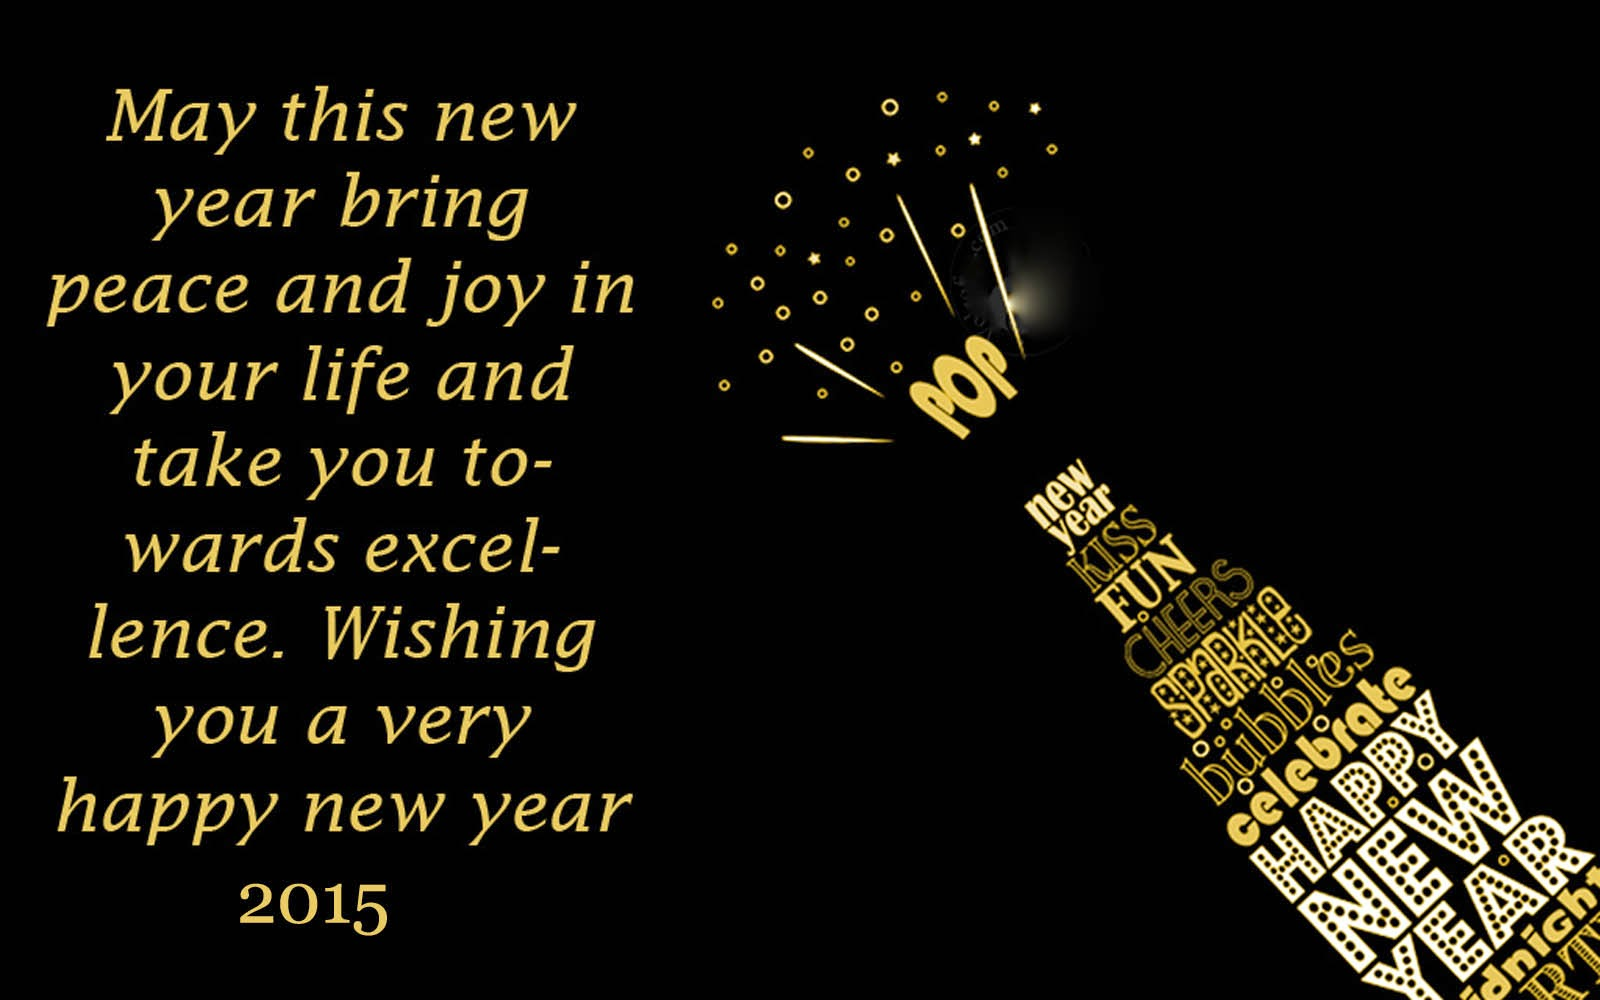 Happy new year wishes and sayings hd wallpapers happy new year 2015 greeting messages and greetings for boyfriend although the new year usually brings change i am glad that you are the one unchanged kristyandbryce Gallery